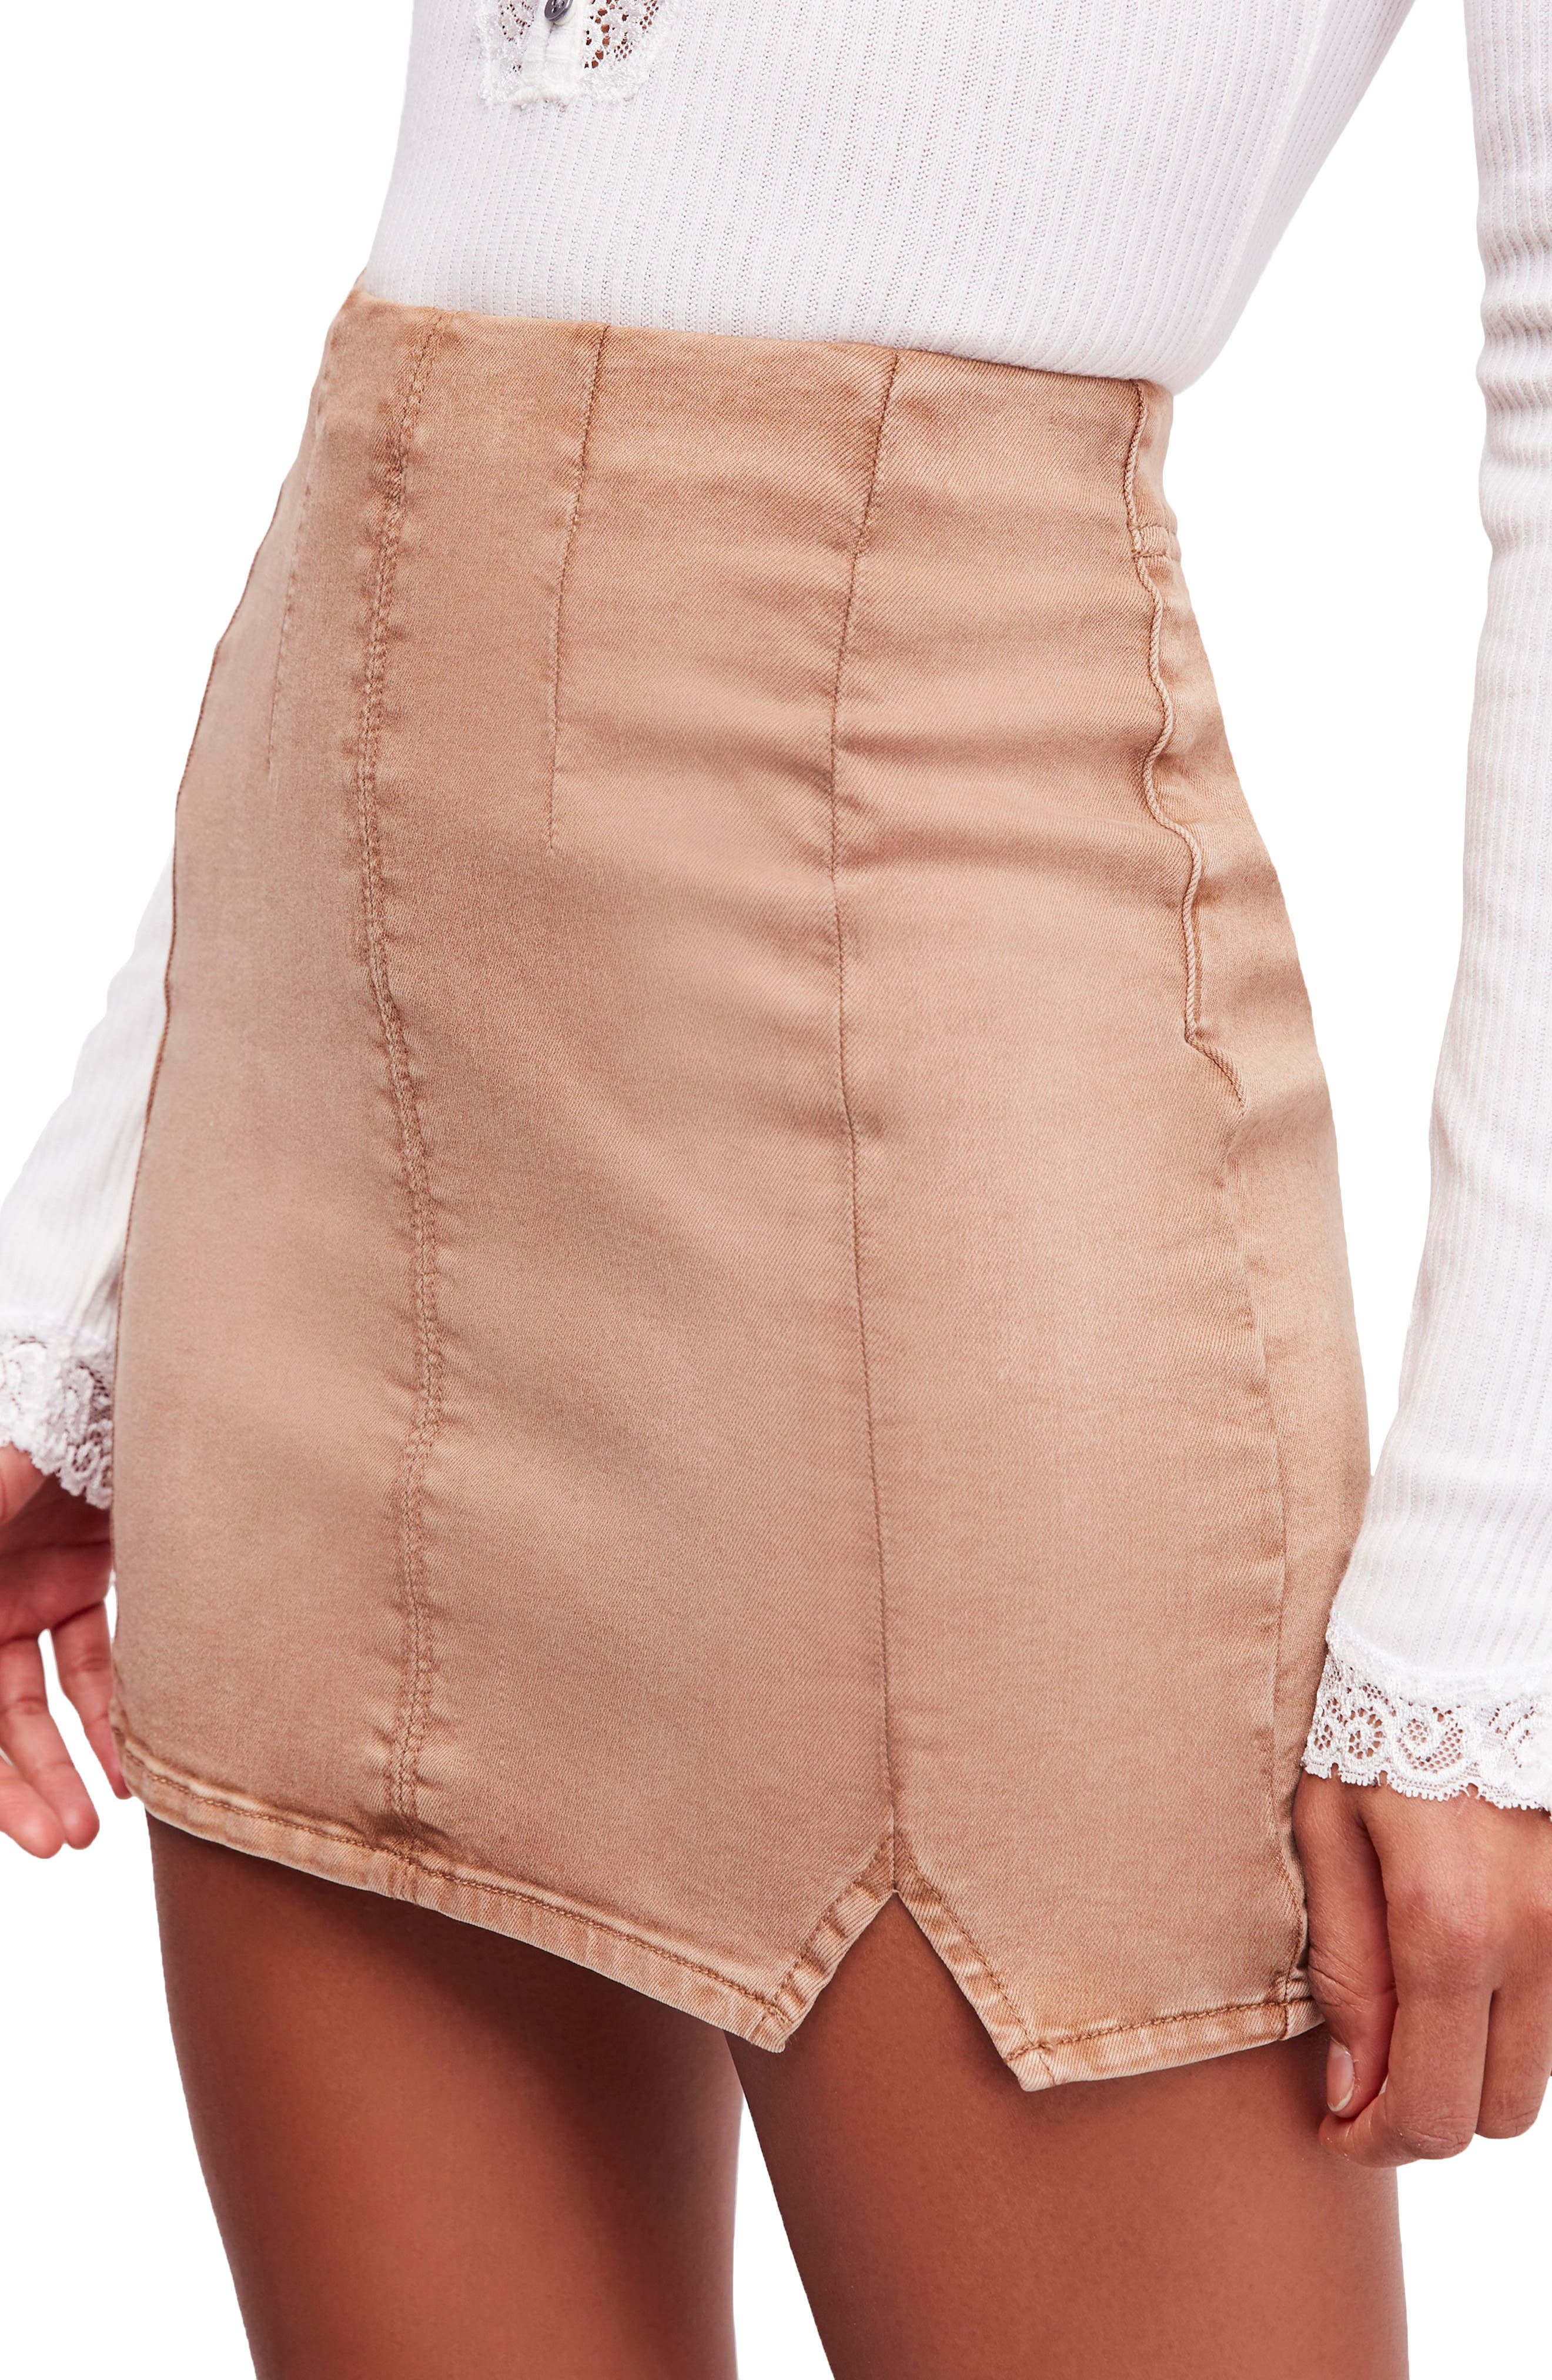 Femme Fatale Pull On Skirt,                         Main,                         color, Khaki